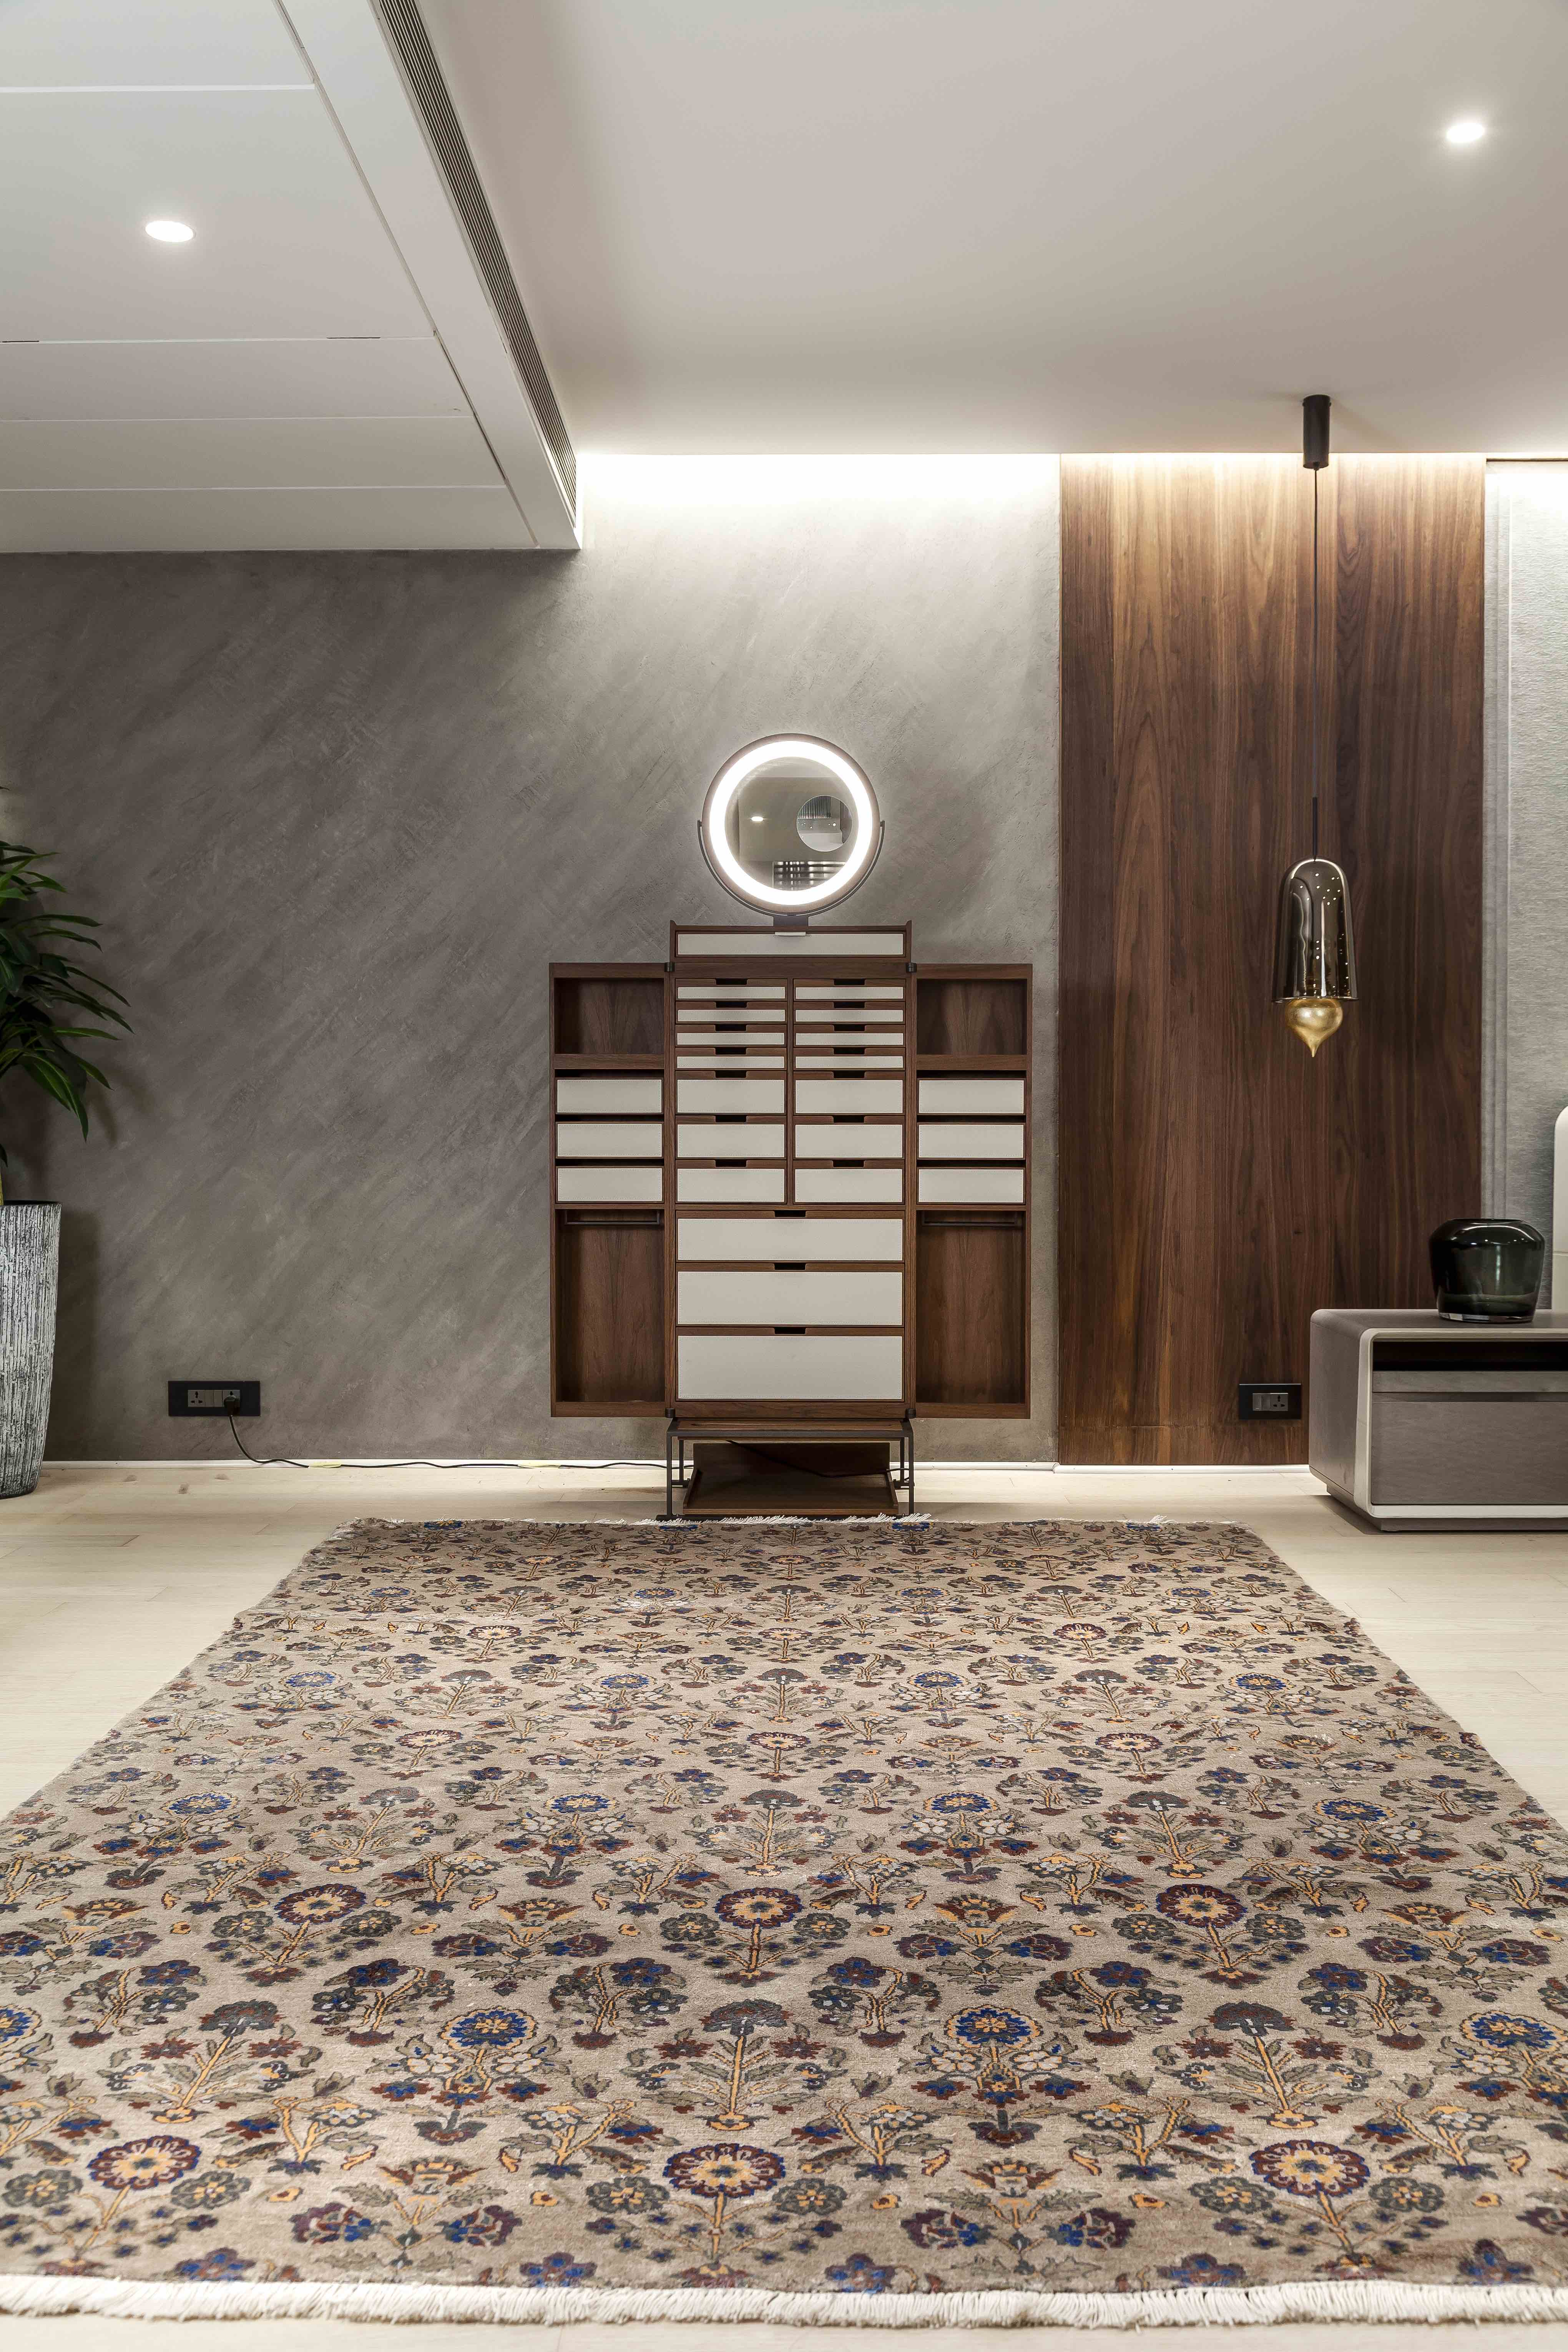 An intricately patterned rug can add a splash of colour to modern homes with hard flooring